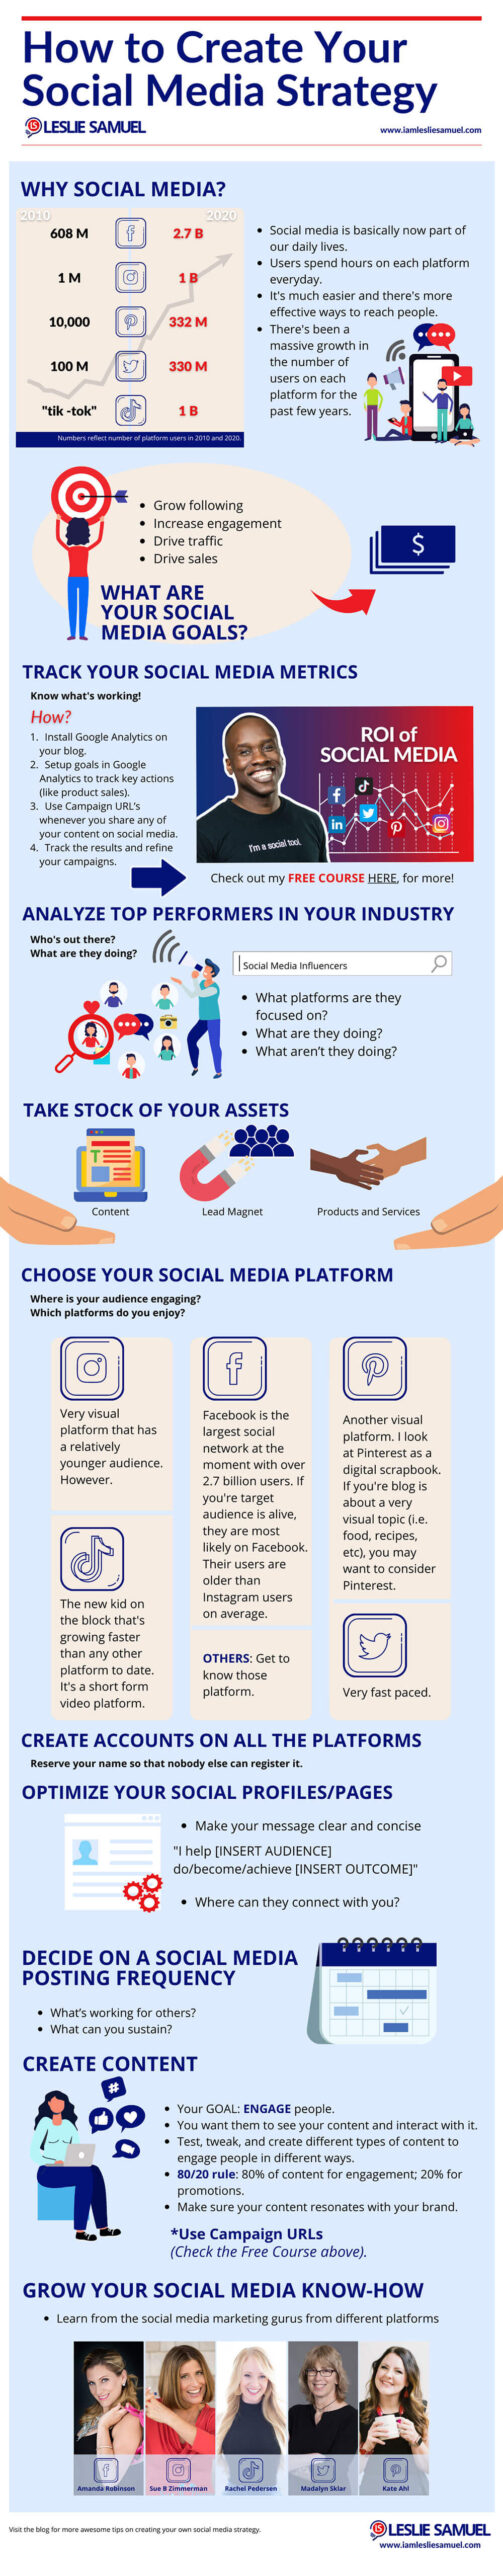 Infographic: How to Create Your Social Media Strategy